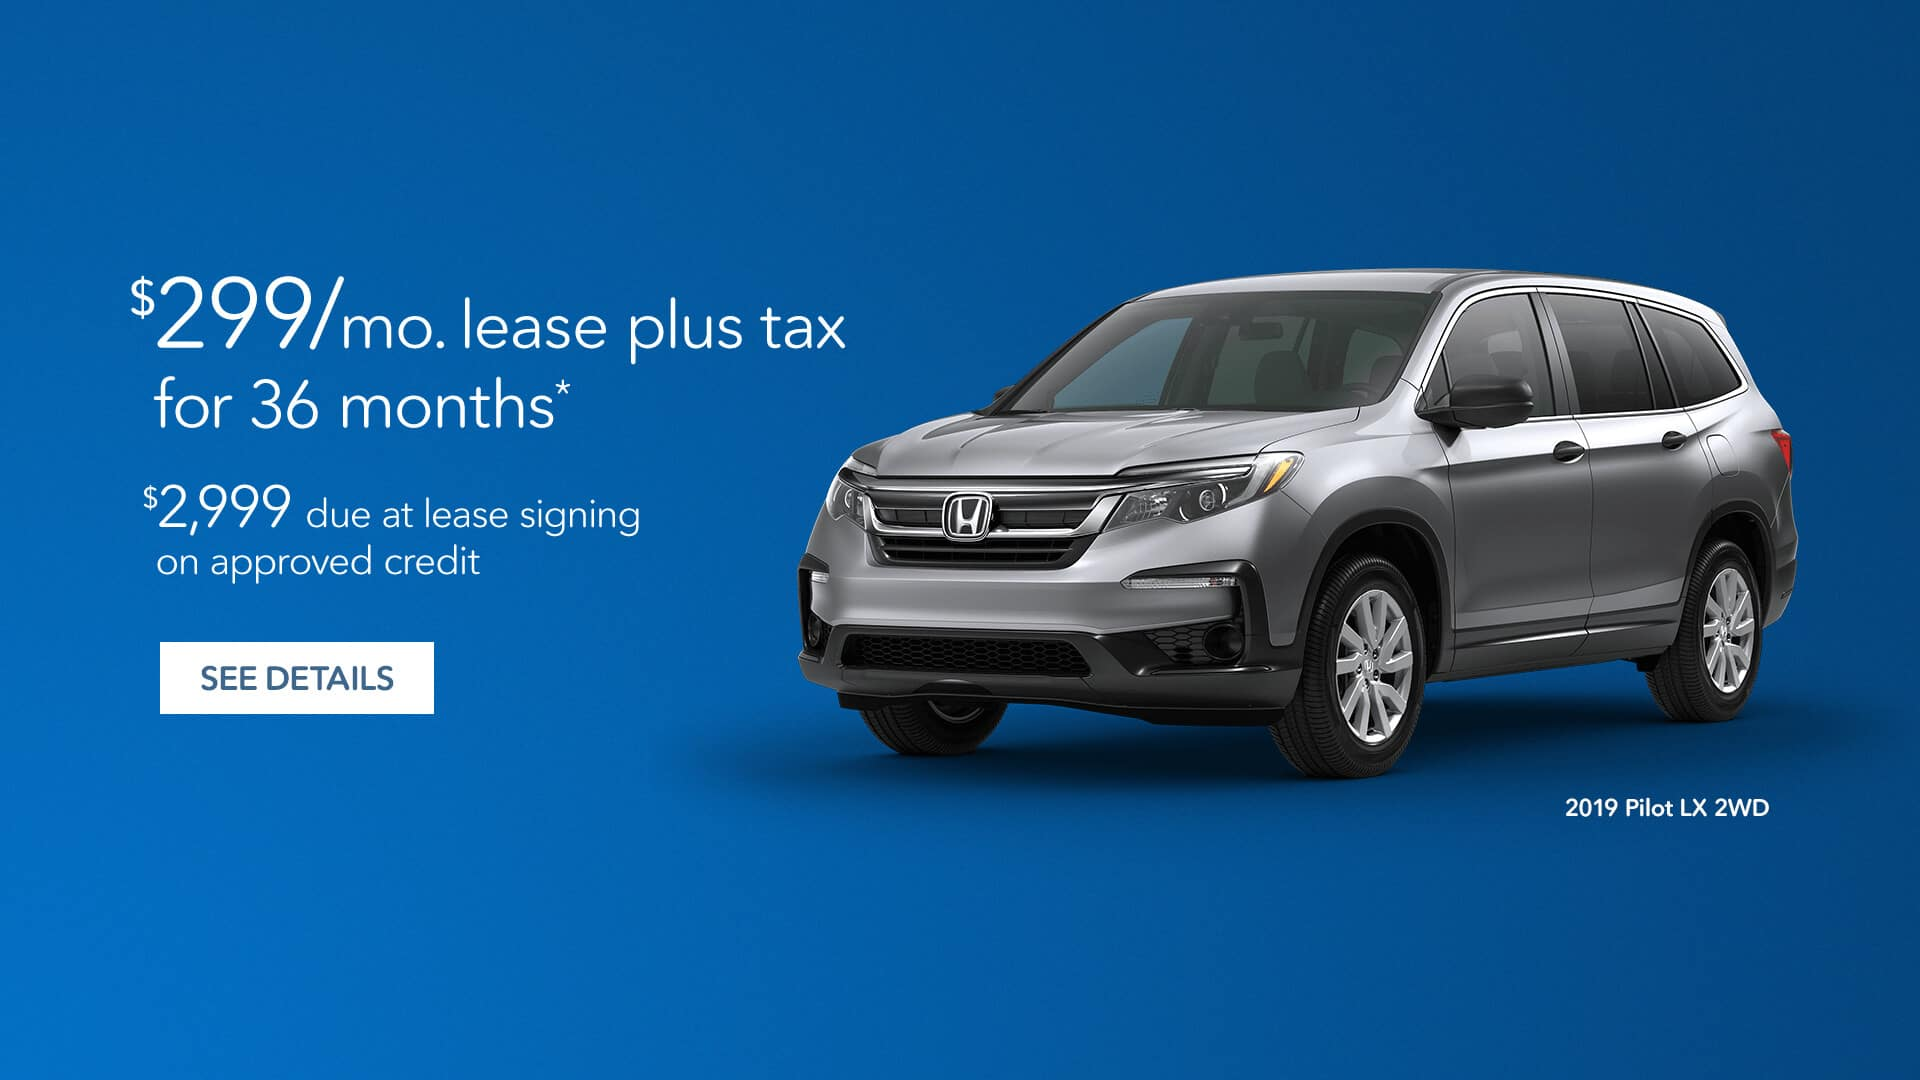 North Texas Honda Dealers 2019 Pilot LX Lease Offer